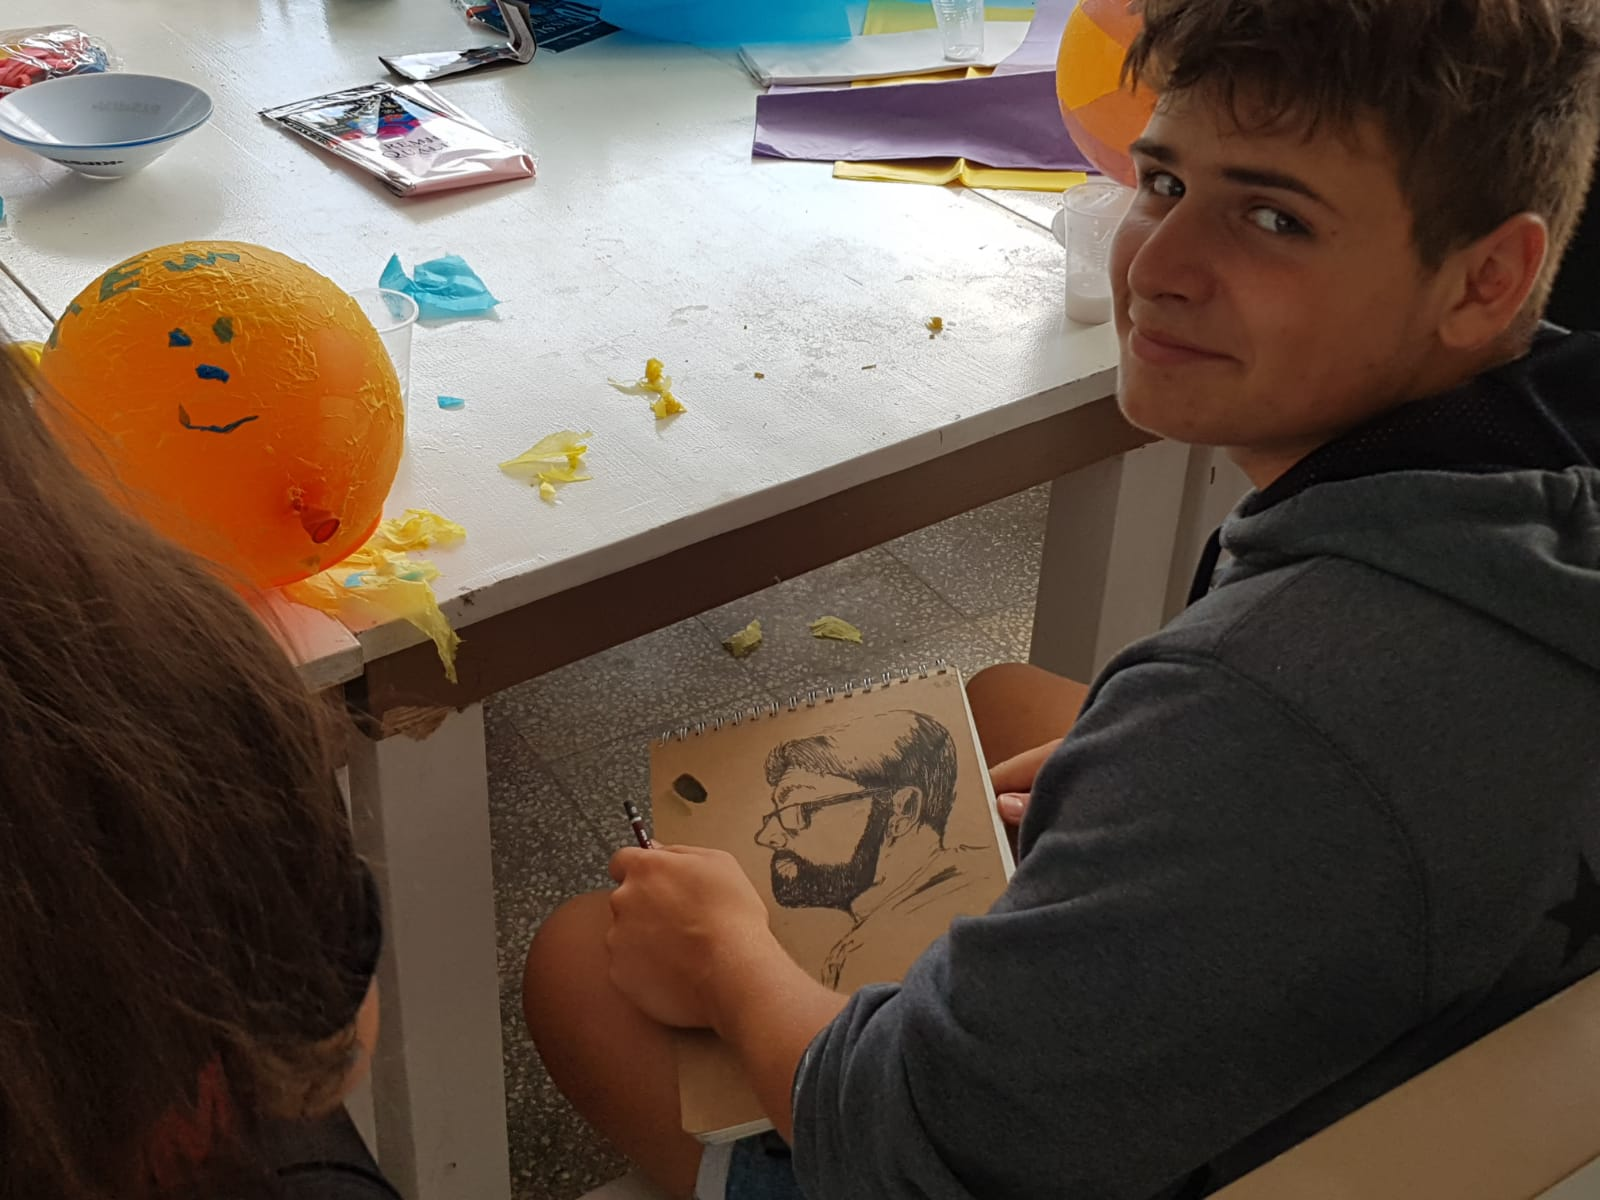 Z camp, day 8 - Arts & Crafts, boy draws a portrait of a man